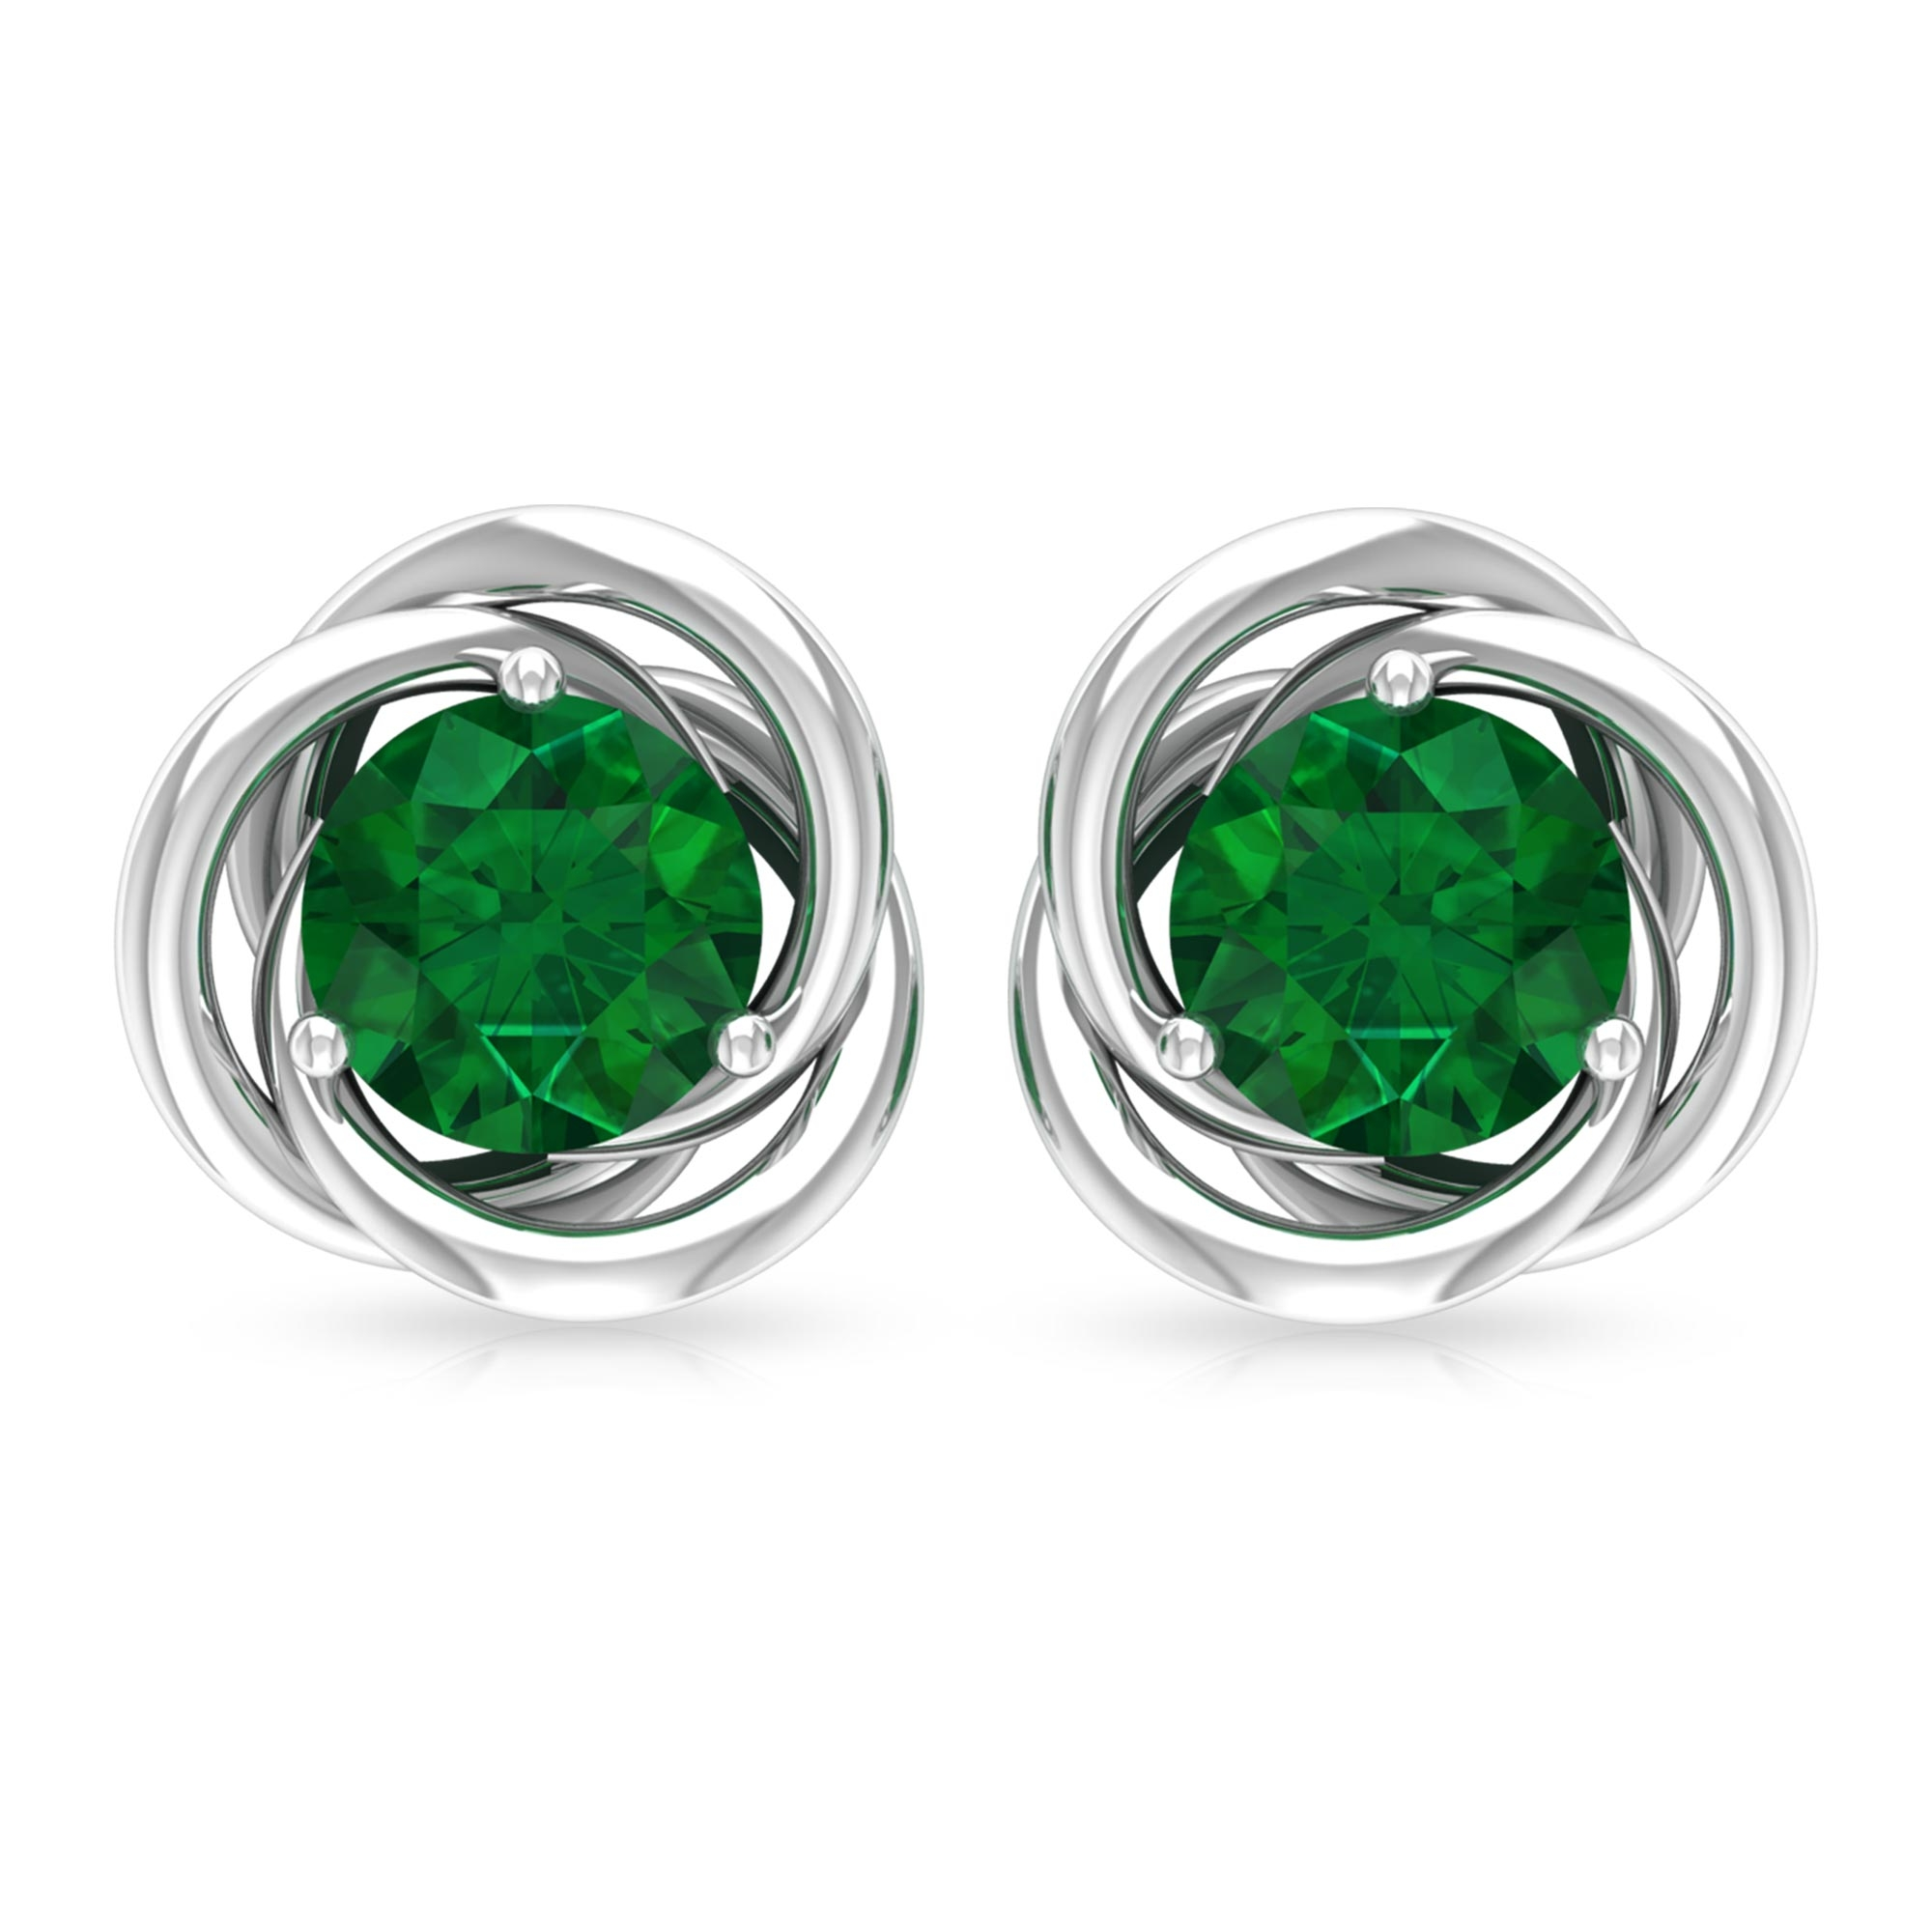 1 CT Solitaire Emerald and Gold Swirl Stud Earrings in Prong Setting